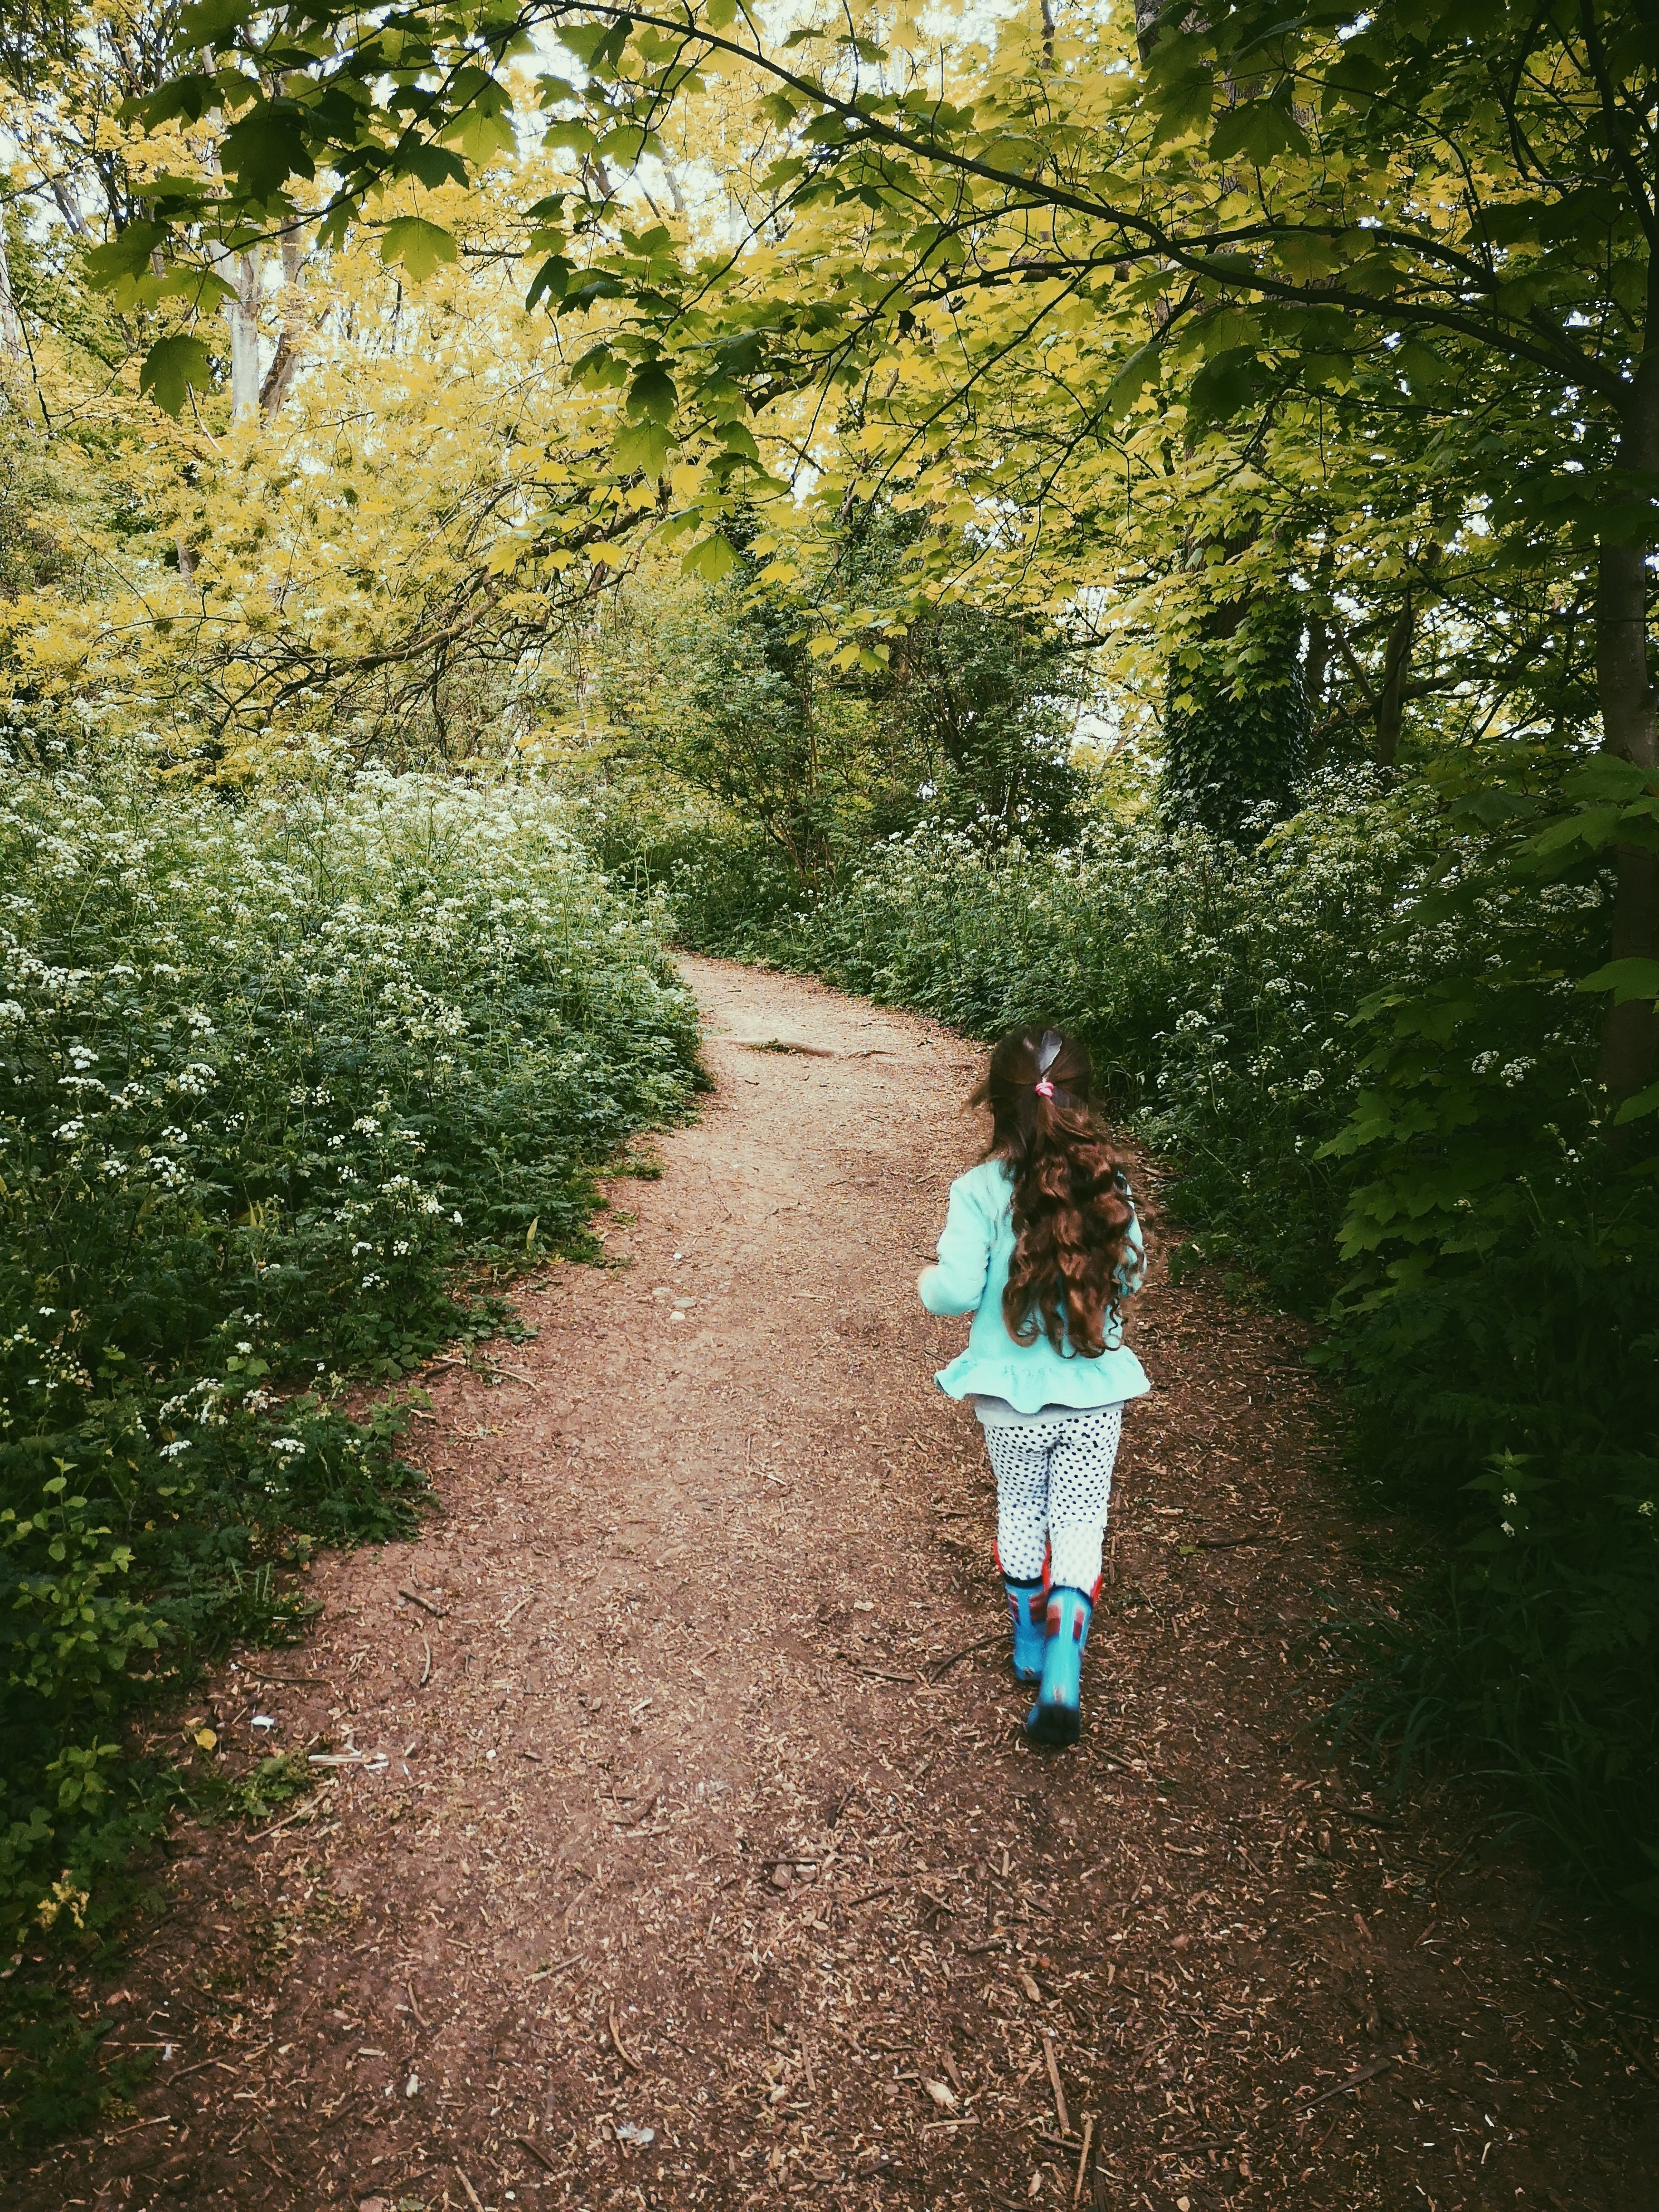 A picture of a young girl walking through English woodland